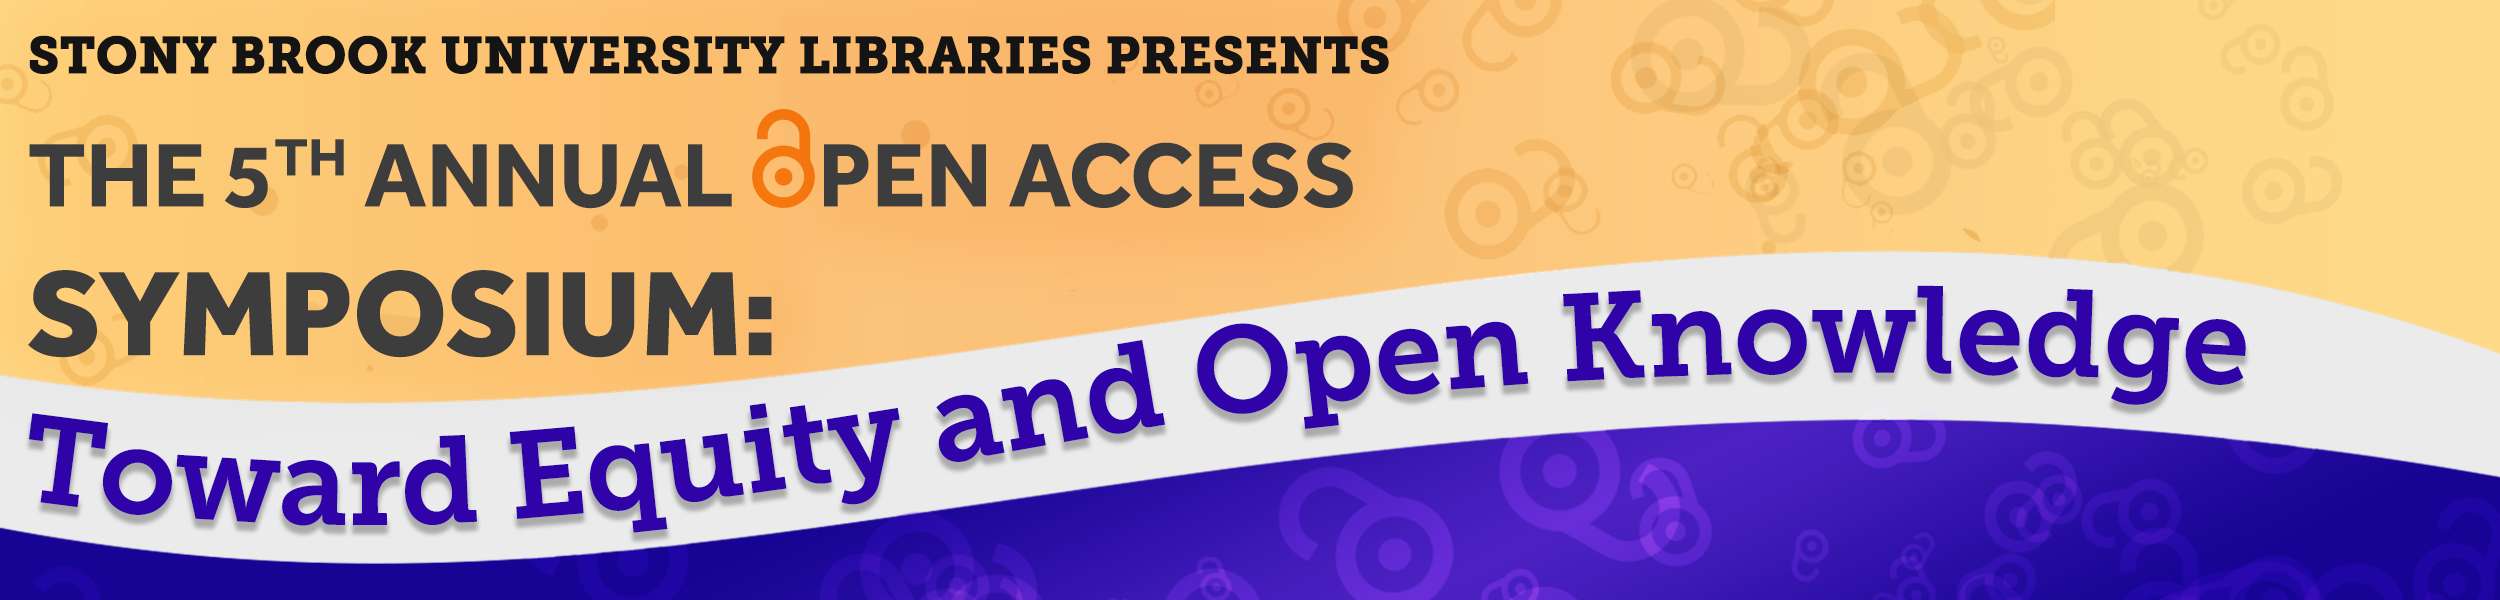 Stony Brook University Libraries Presents: The 5th Annual Open Access Symposium: Toward Equity and Open Knowledge